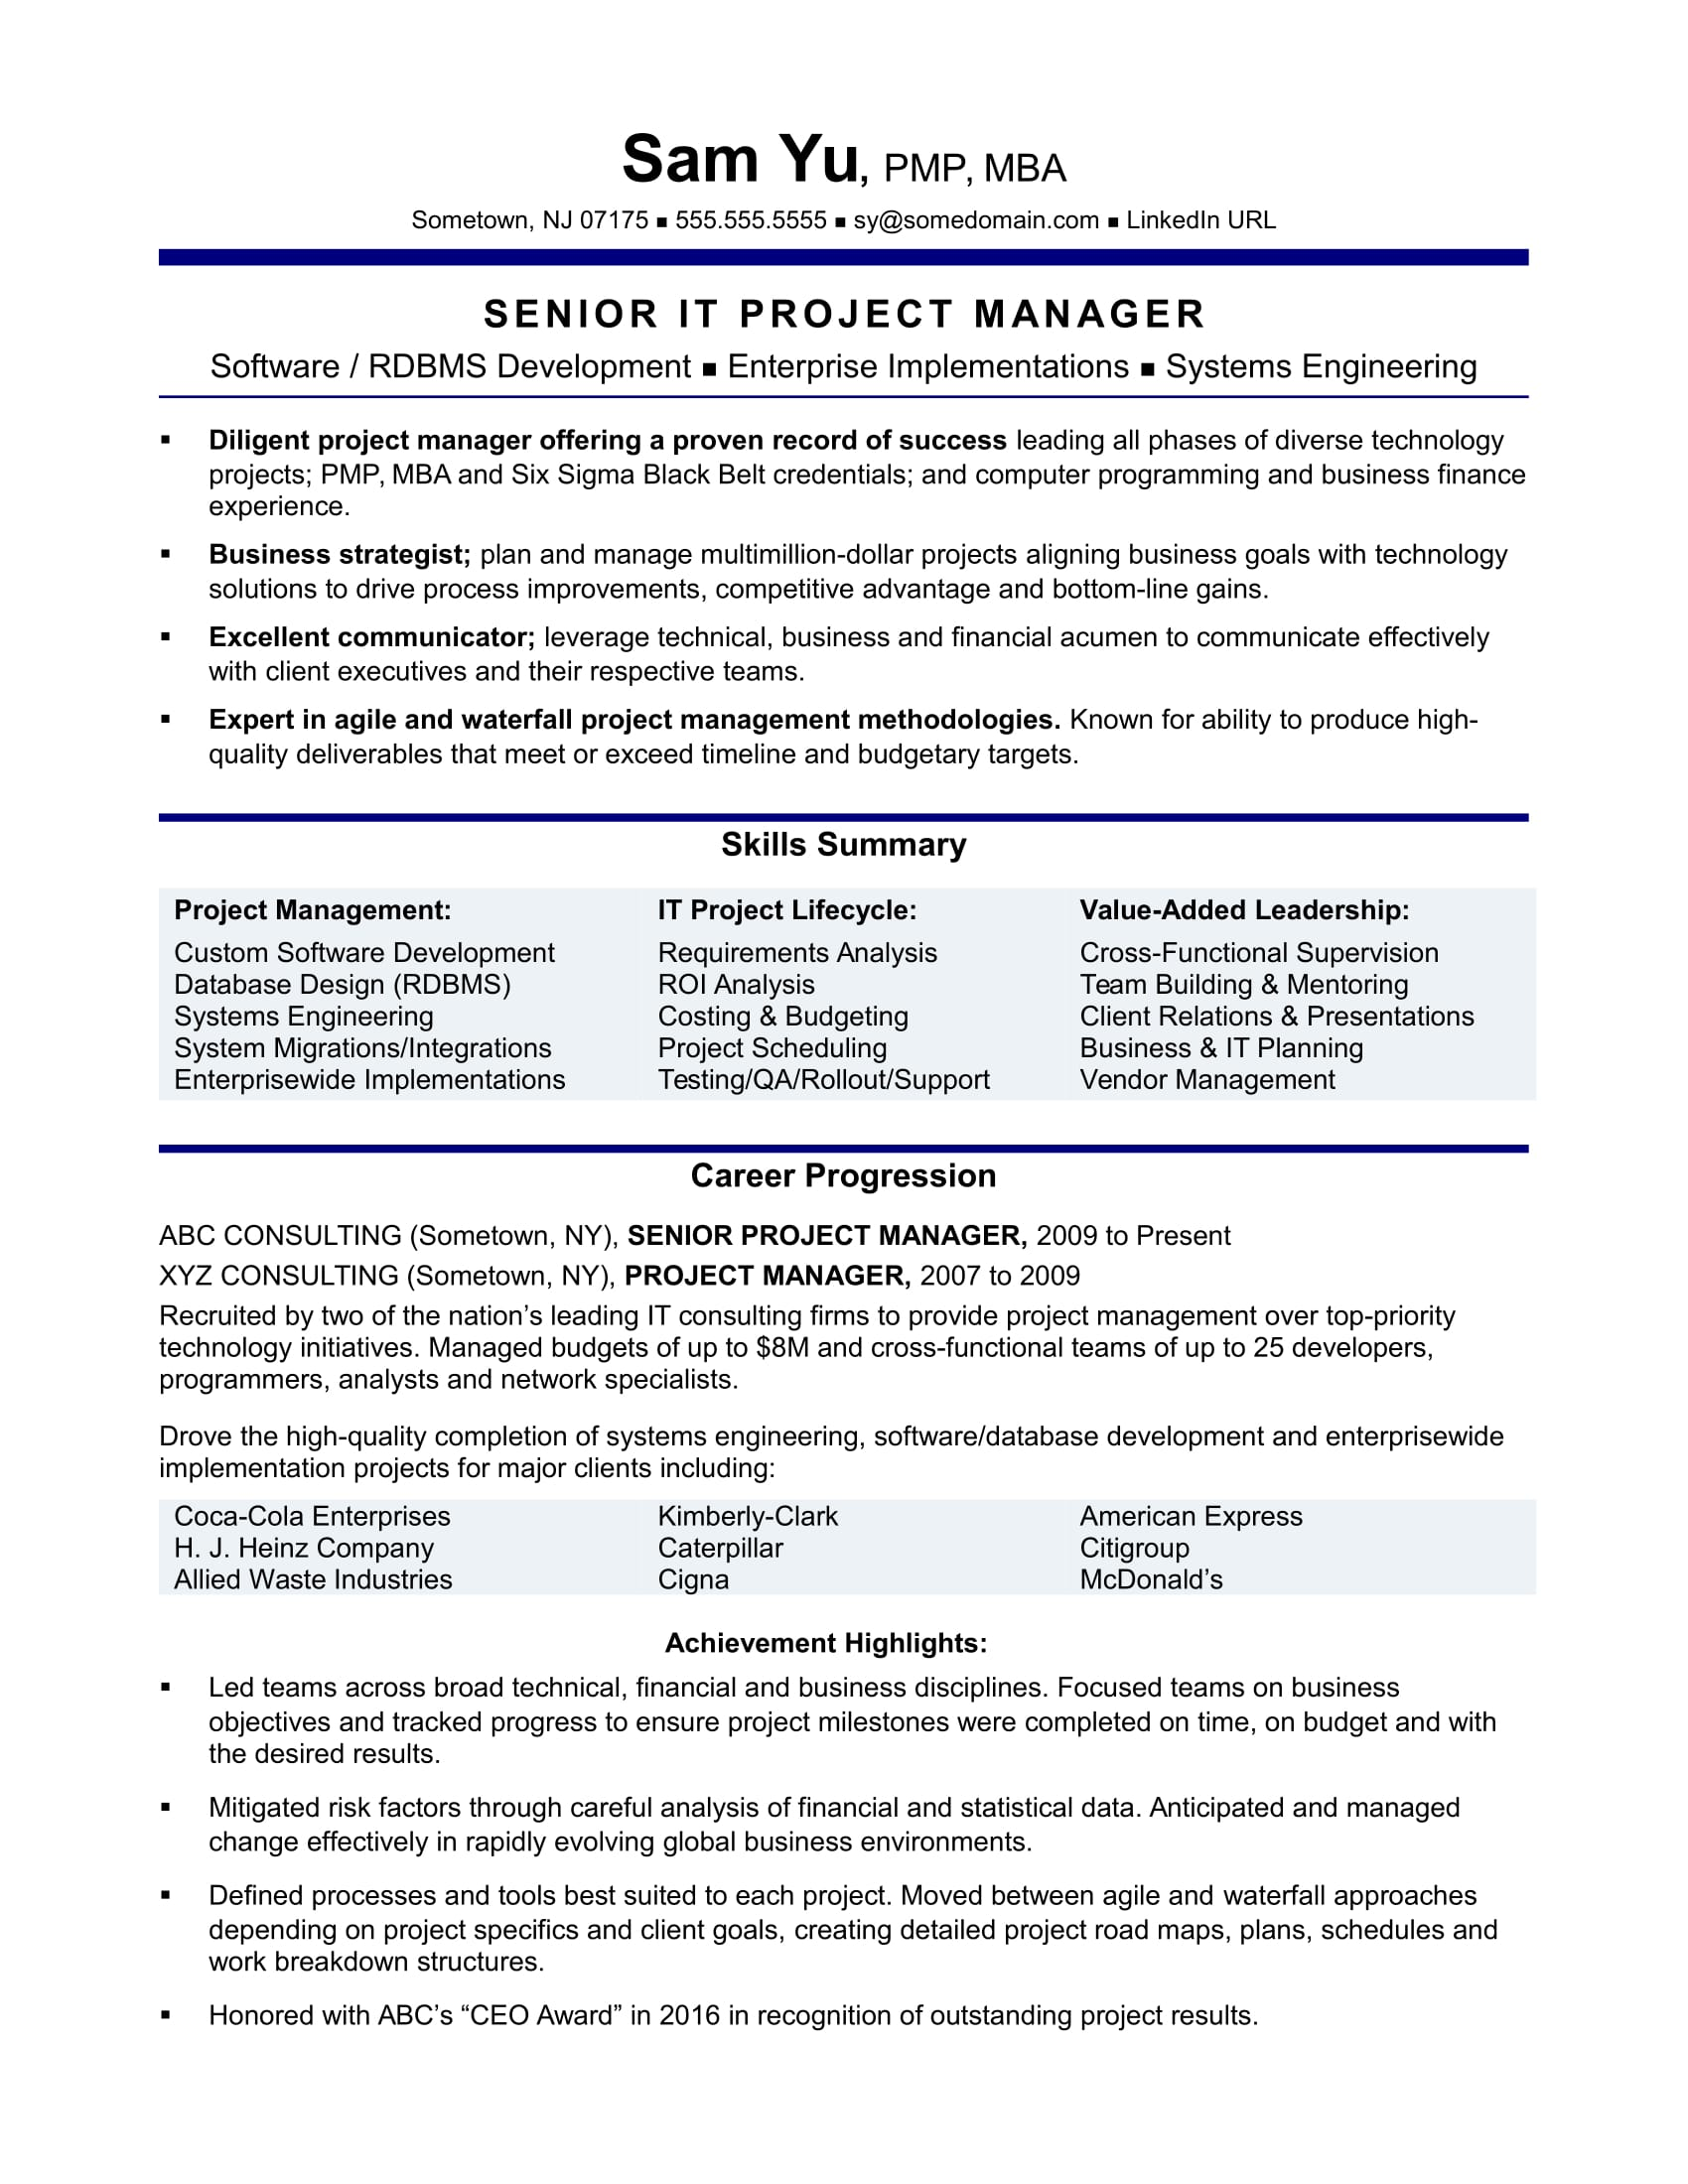 Captivating Experienced IT Project Manager Resume Sample